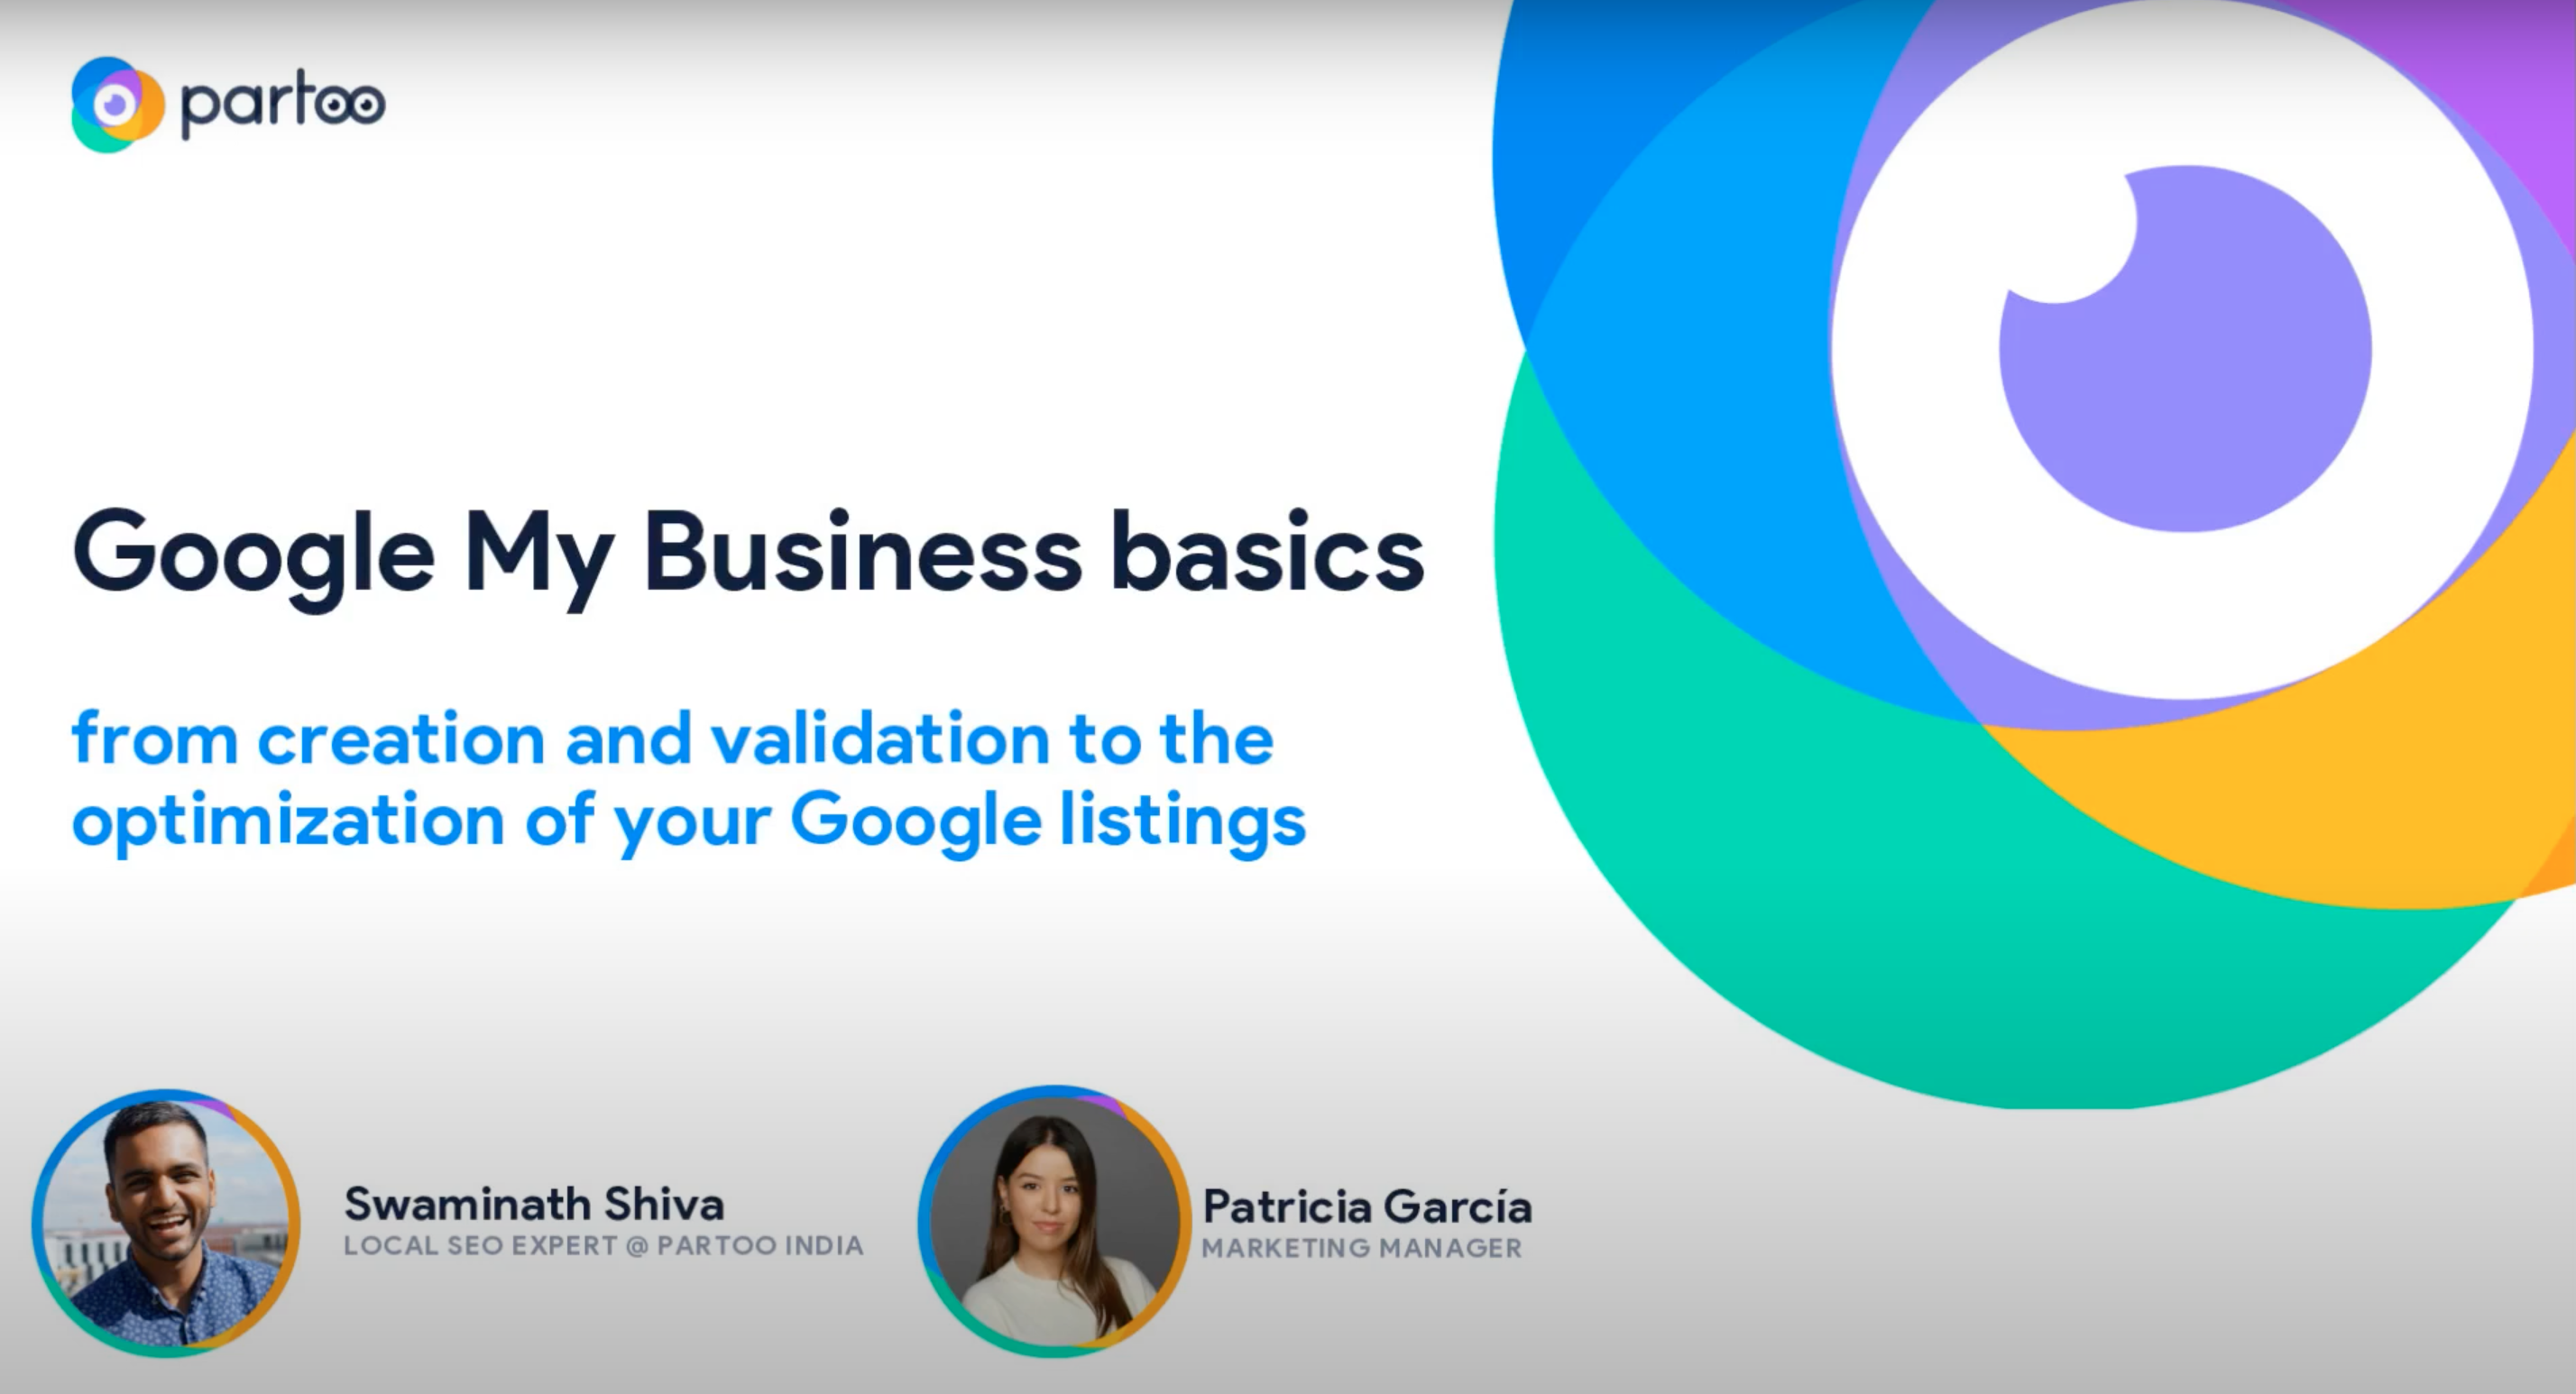 webinar for partoo india about google my business basics